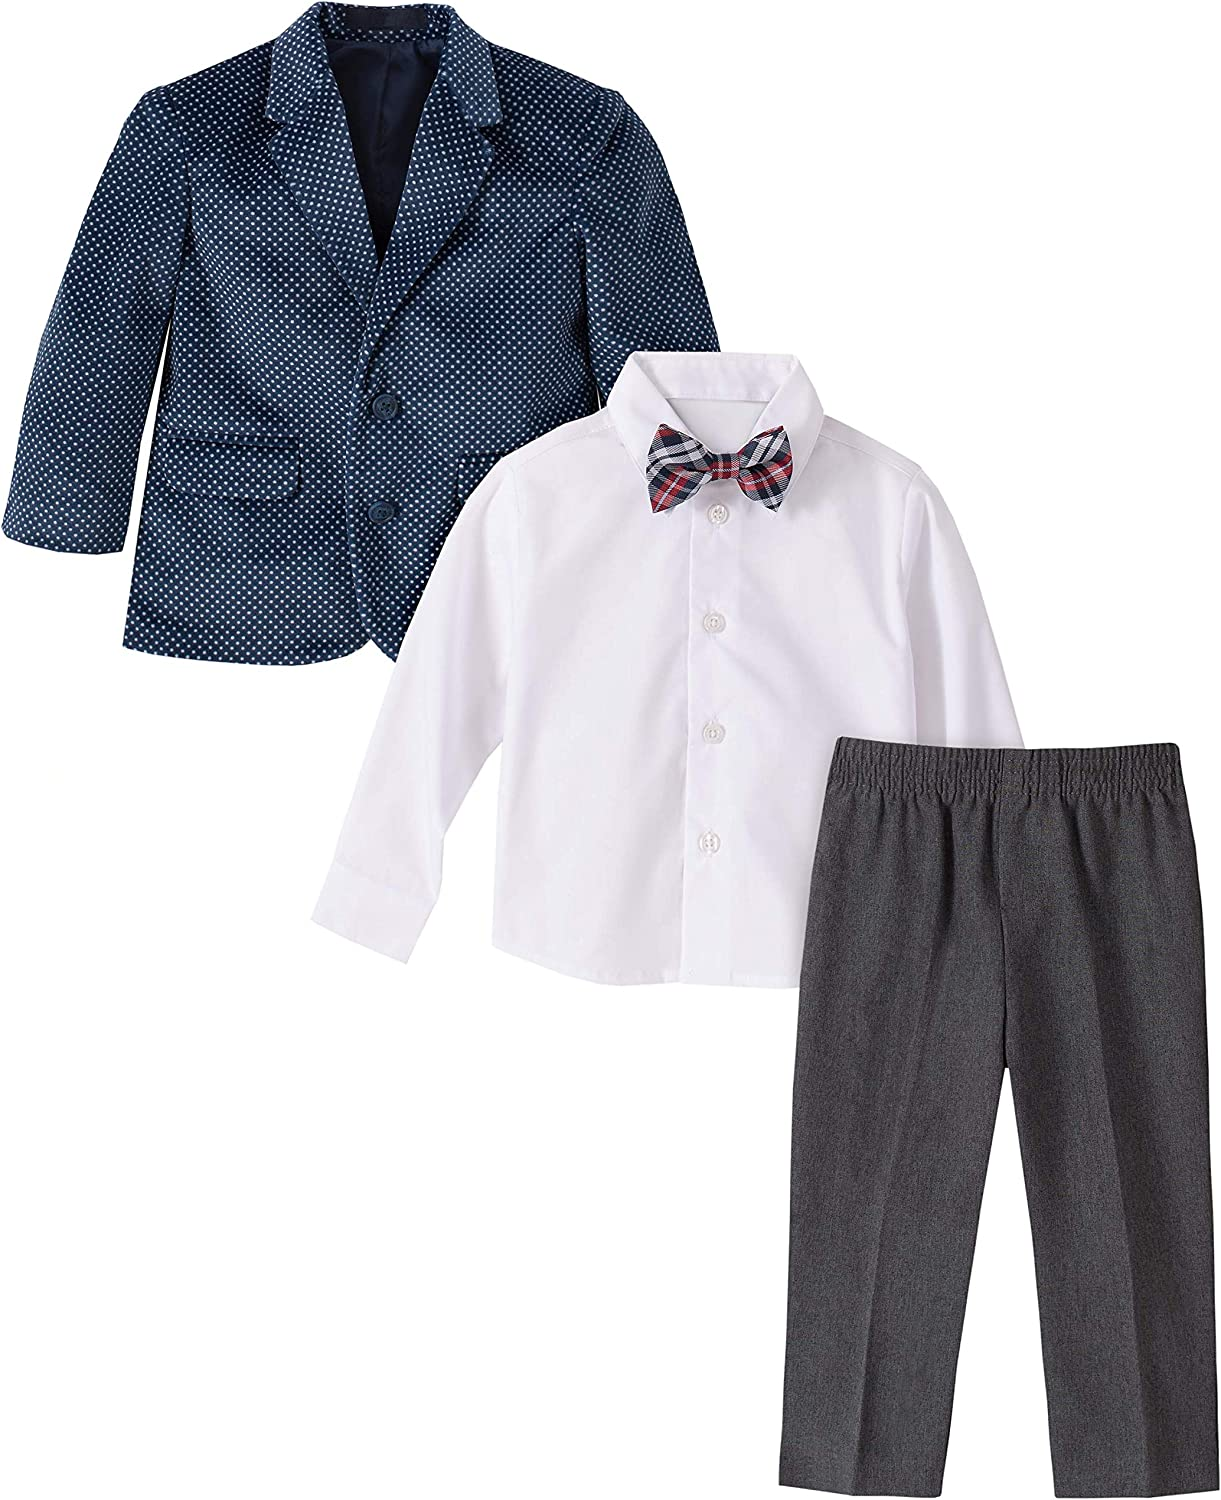 Nautica Baby Boys 4-Piece Suit Set with Dress Shirt and Bow Tie Pants Jacket